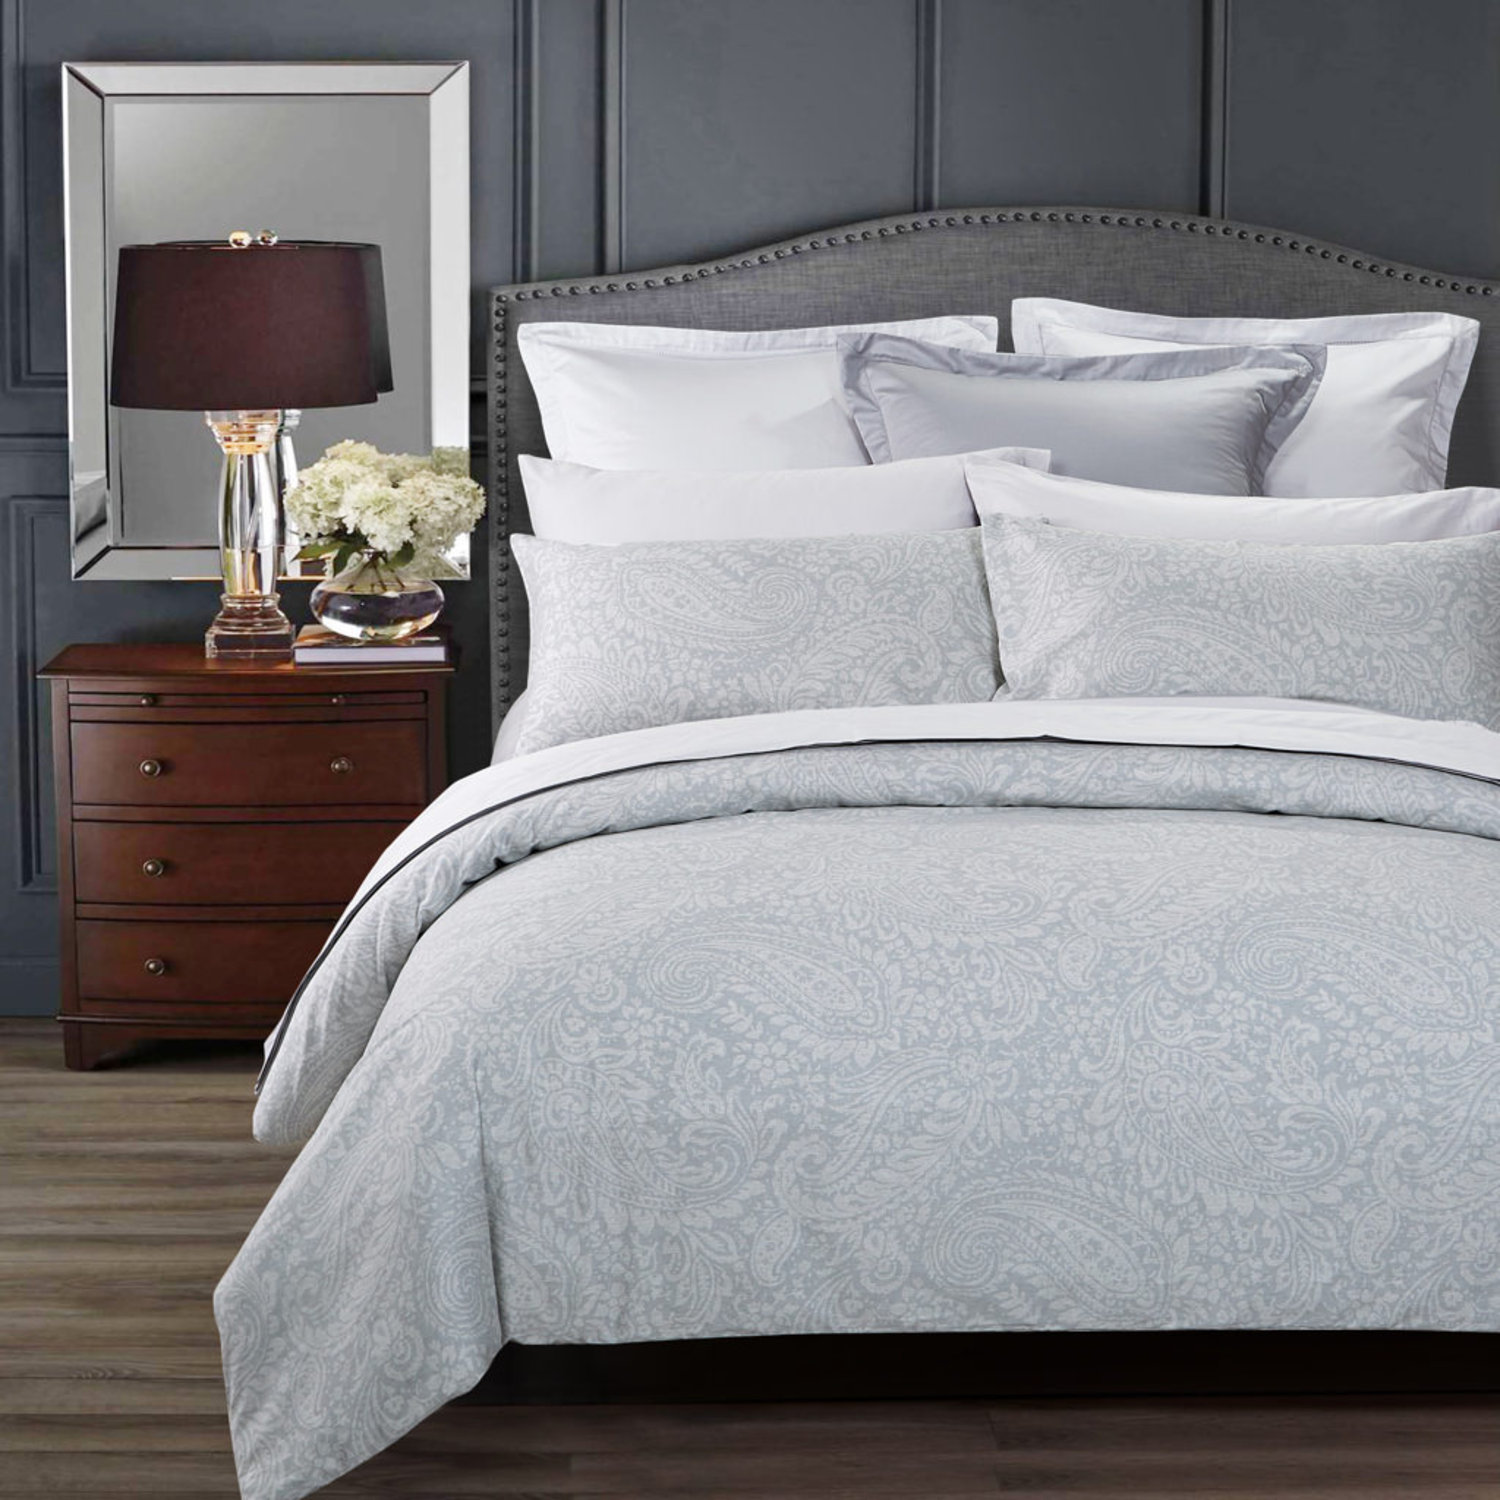 Avalon Grey by Daniadown Bedding